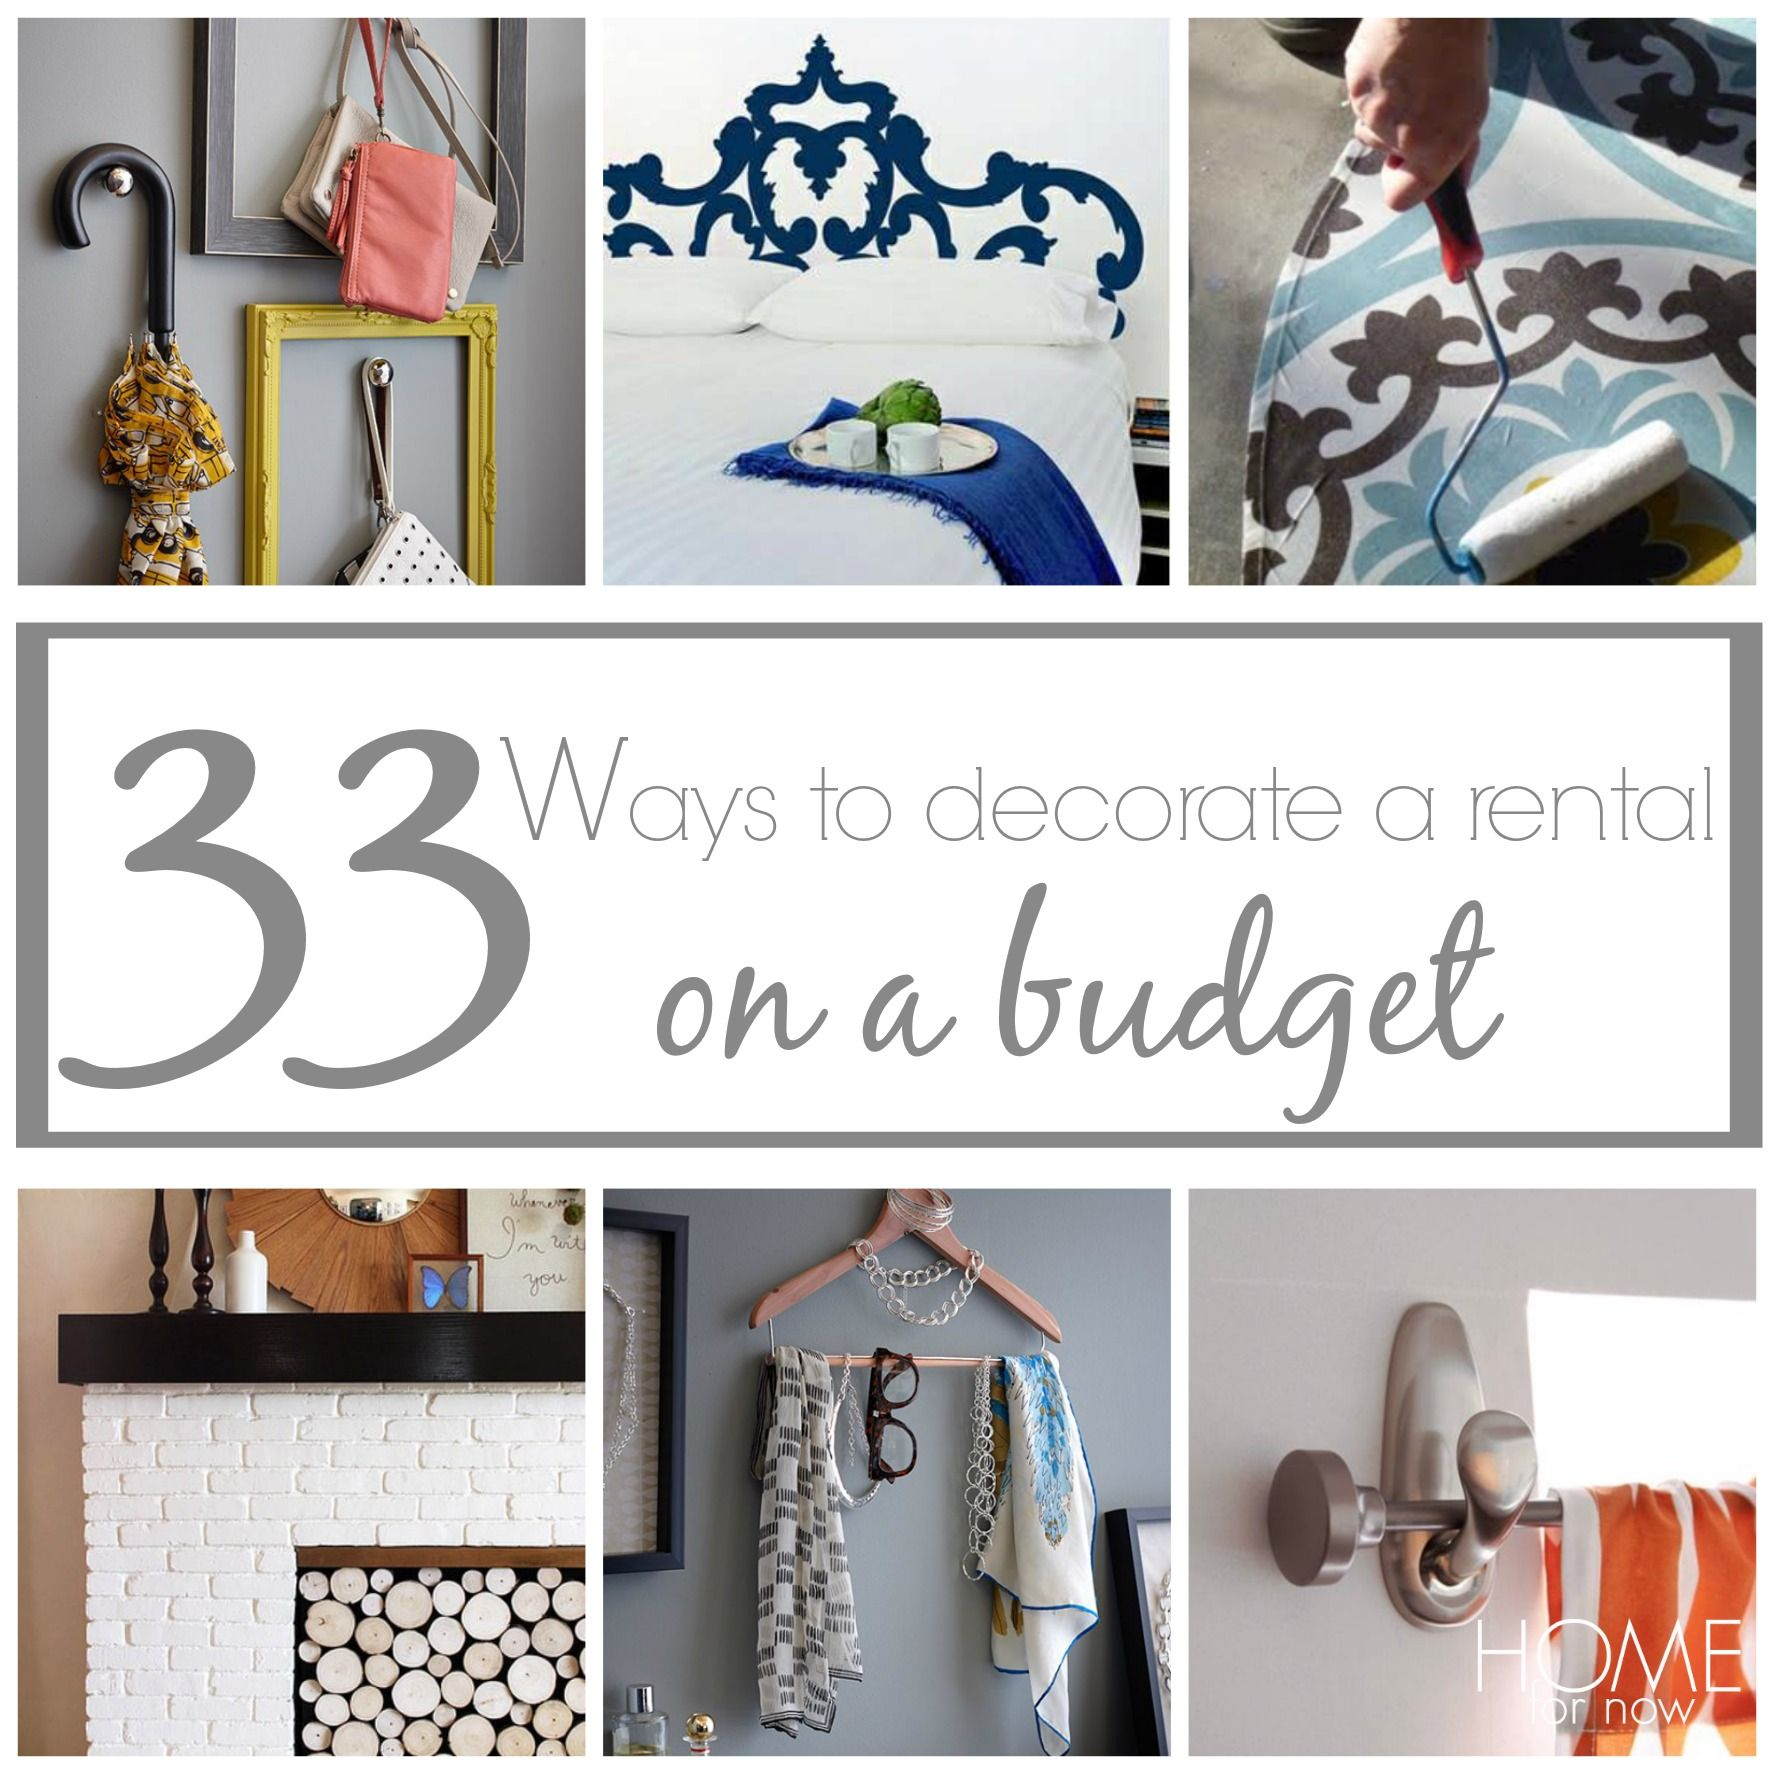 Decorate A Rental Fair 33 Ways To Decorate A Rental On A Budget  How To Decorate A . Inspiration Design